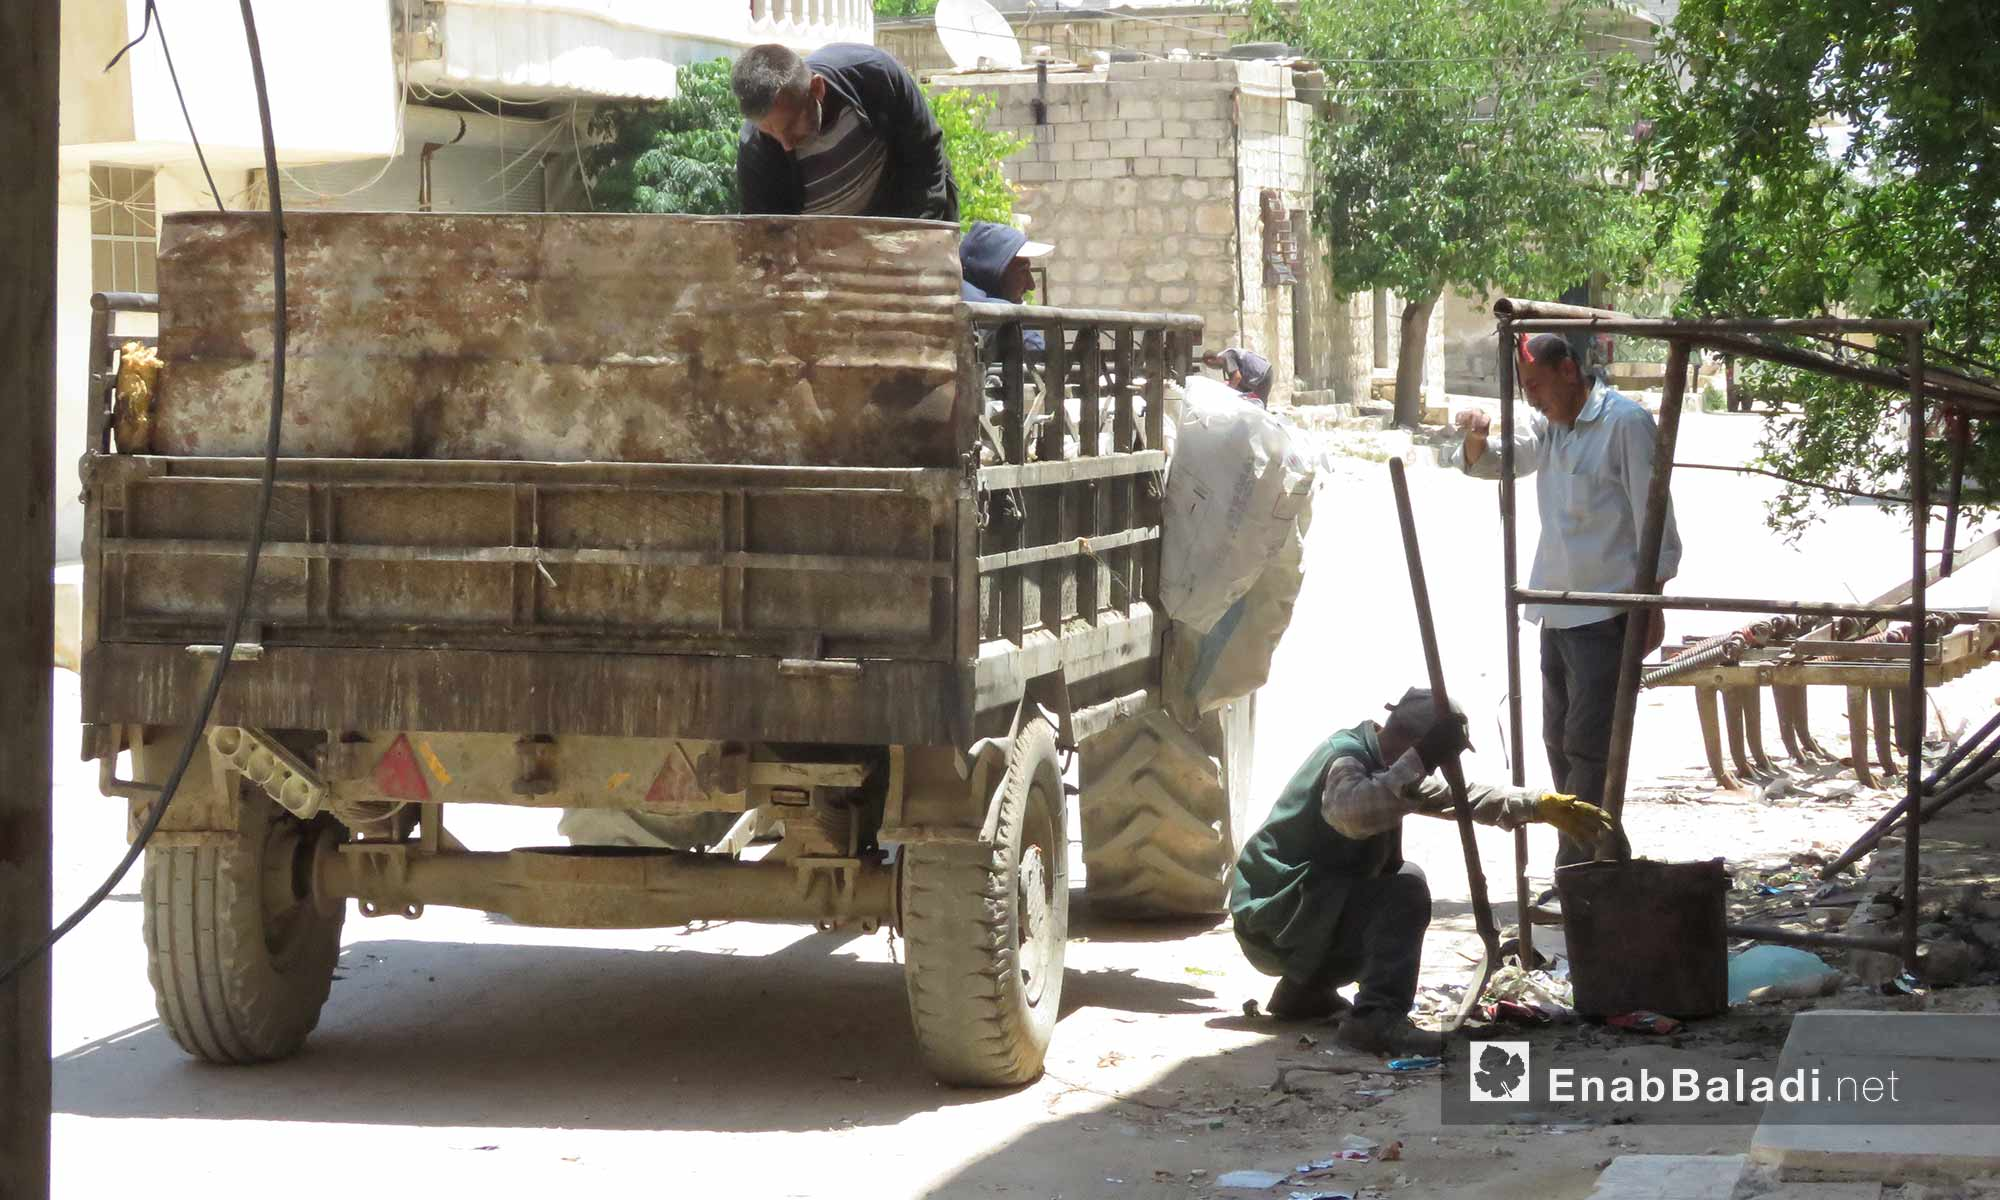 Cleaners in the city of Afrin, rural Aleppo – June 21, 2018 (Enab Baladi)